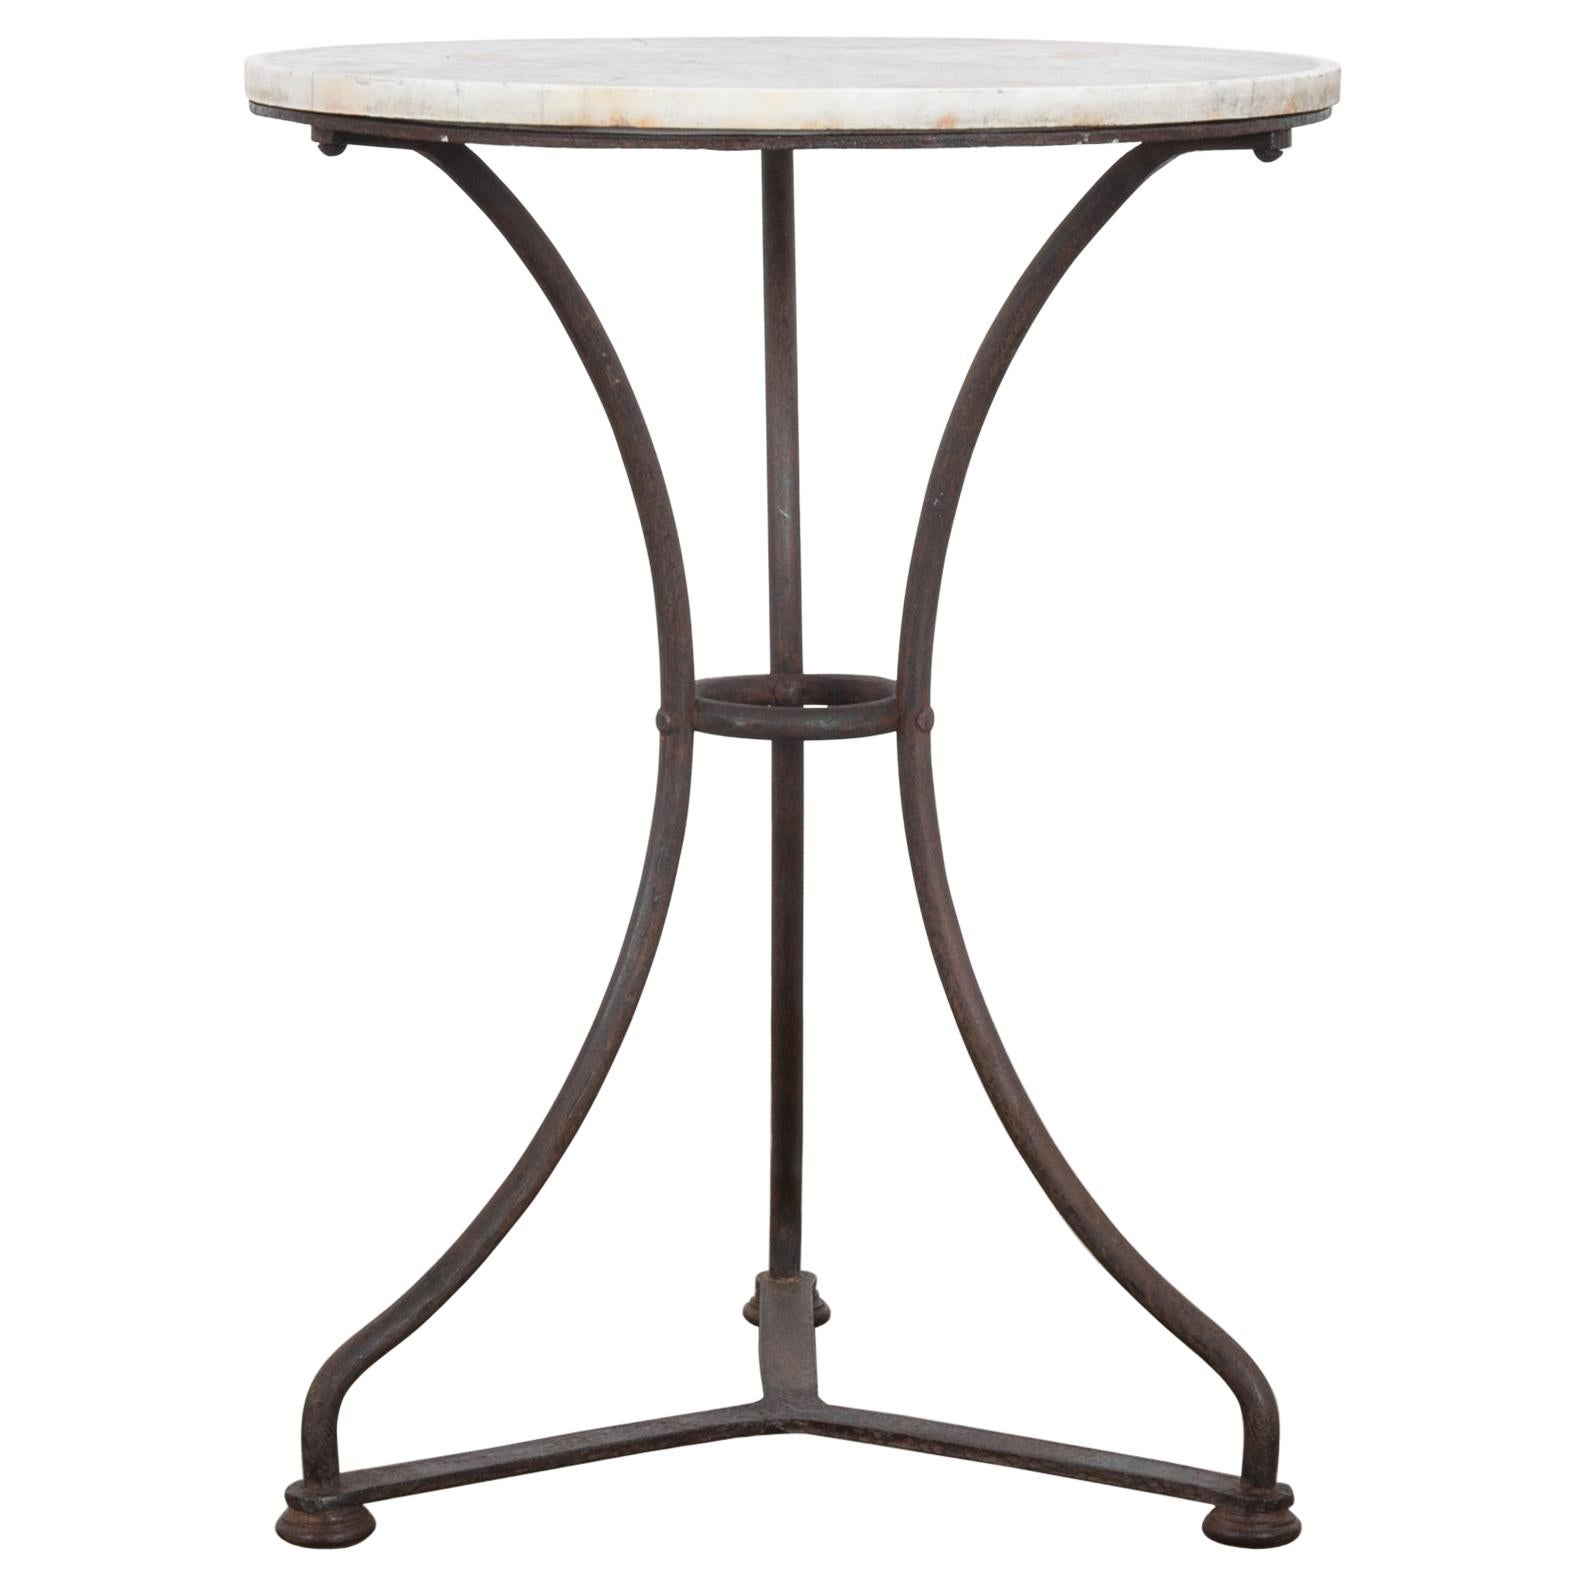 Antique French Iron and Marble Side Table